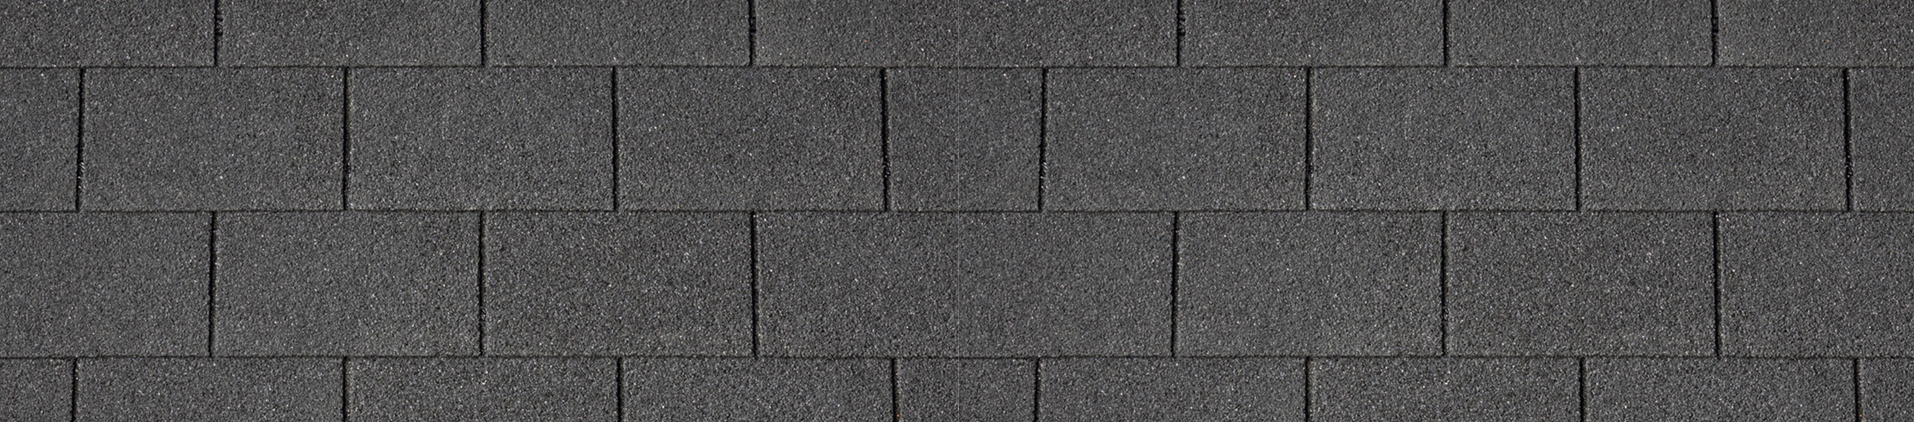 Roofing Materials You Need for a Shed